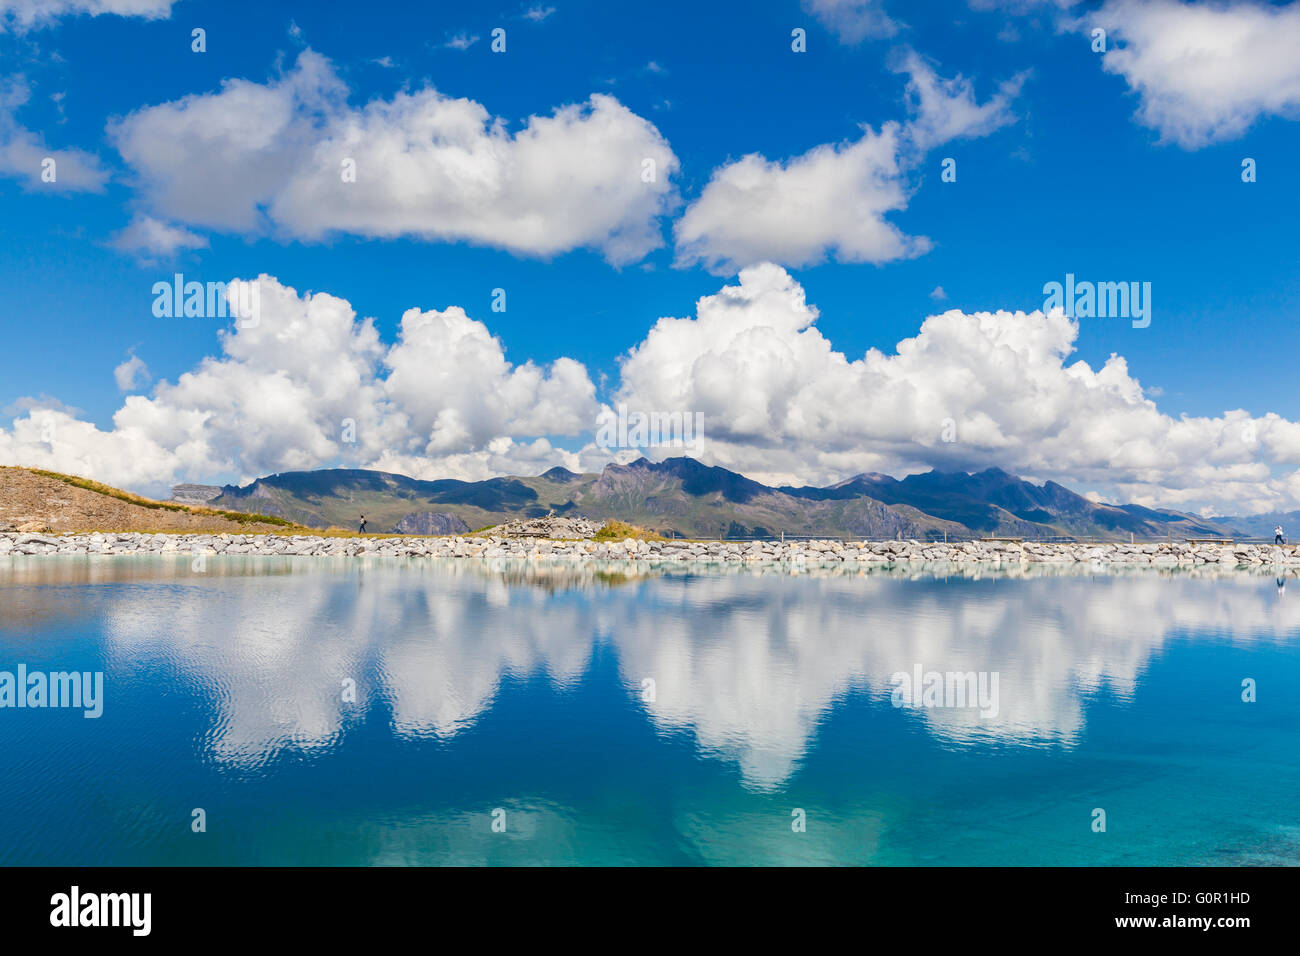 Stunning view of the Fallbodensee (lake) on Bernese Oberland with reflection of clouds and mountain ranges, Switzerland. - Stock Image